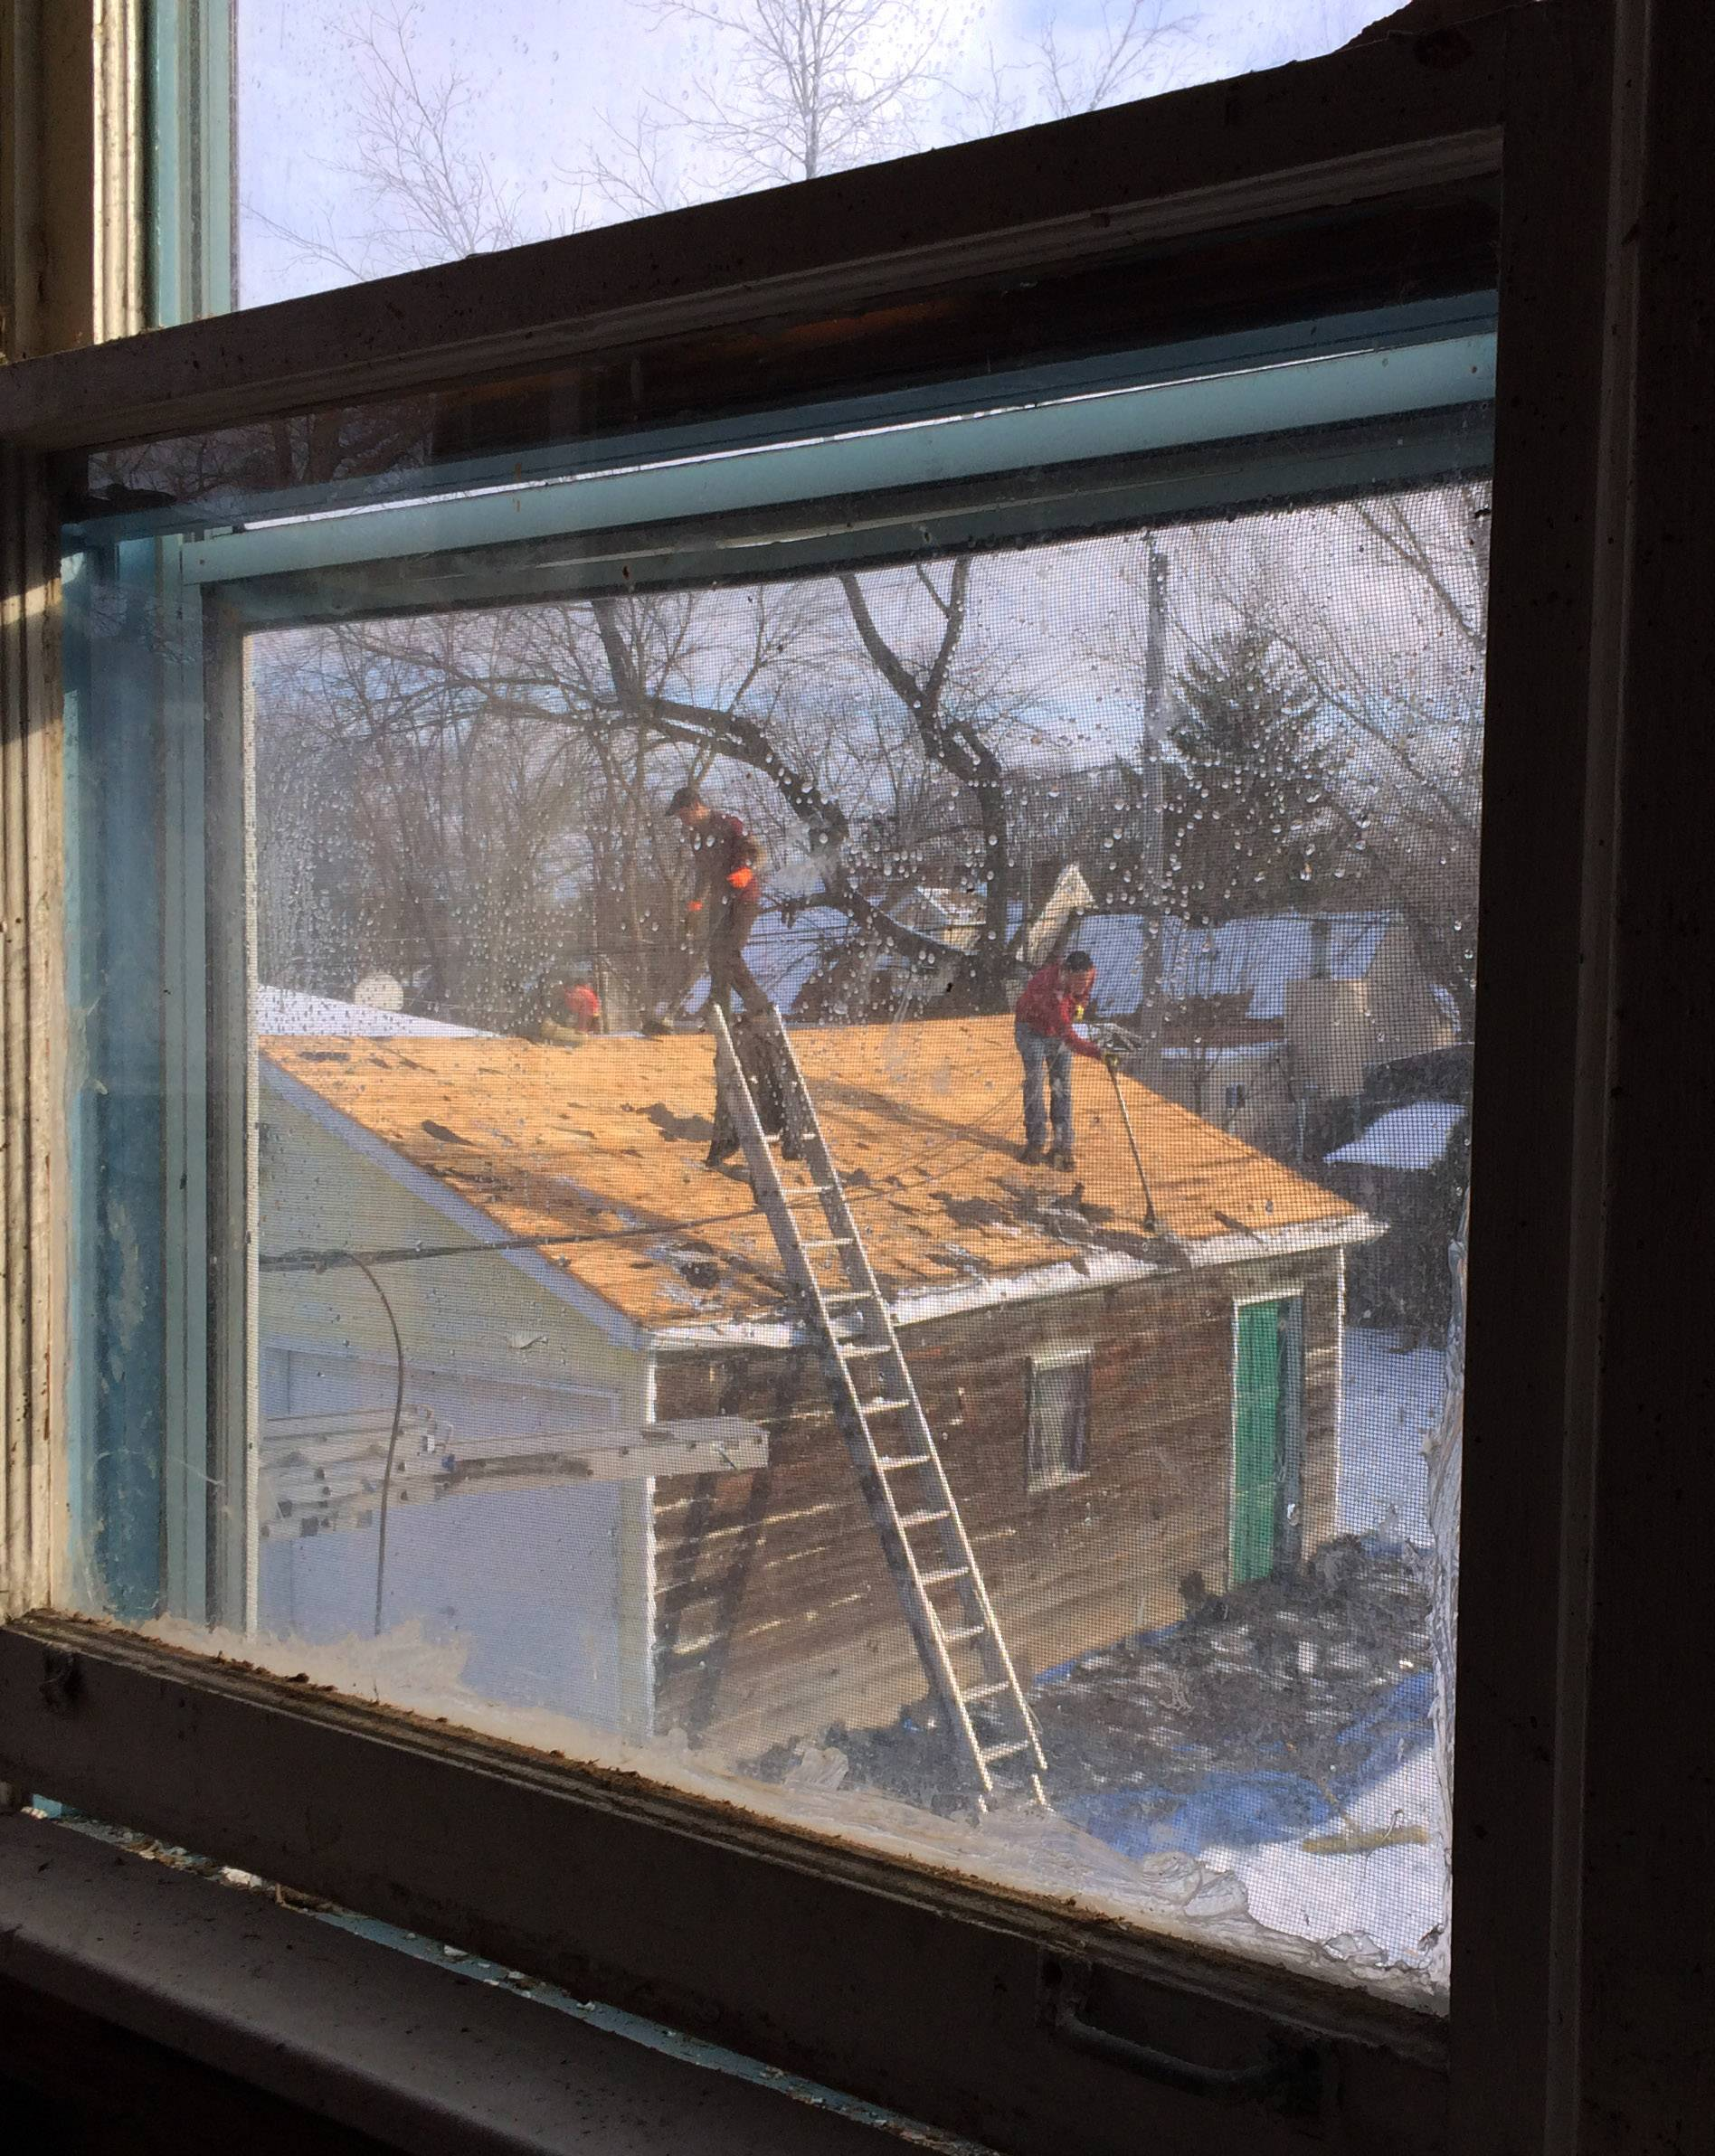 The view from inside a home on the 100 block of Bellevue Drive in Round Lake Park as roofers work on the garage.